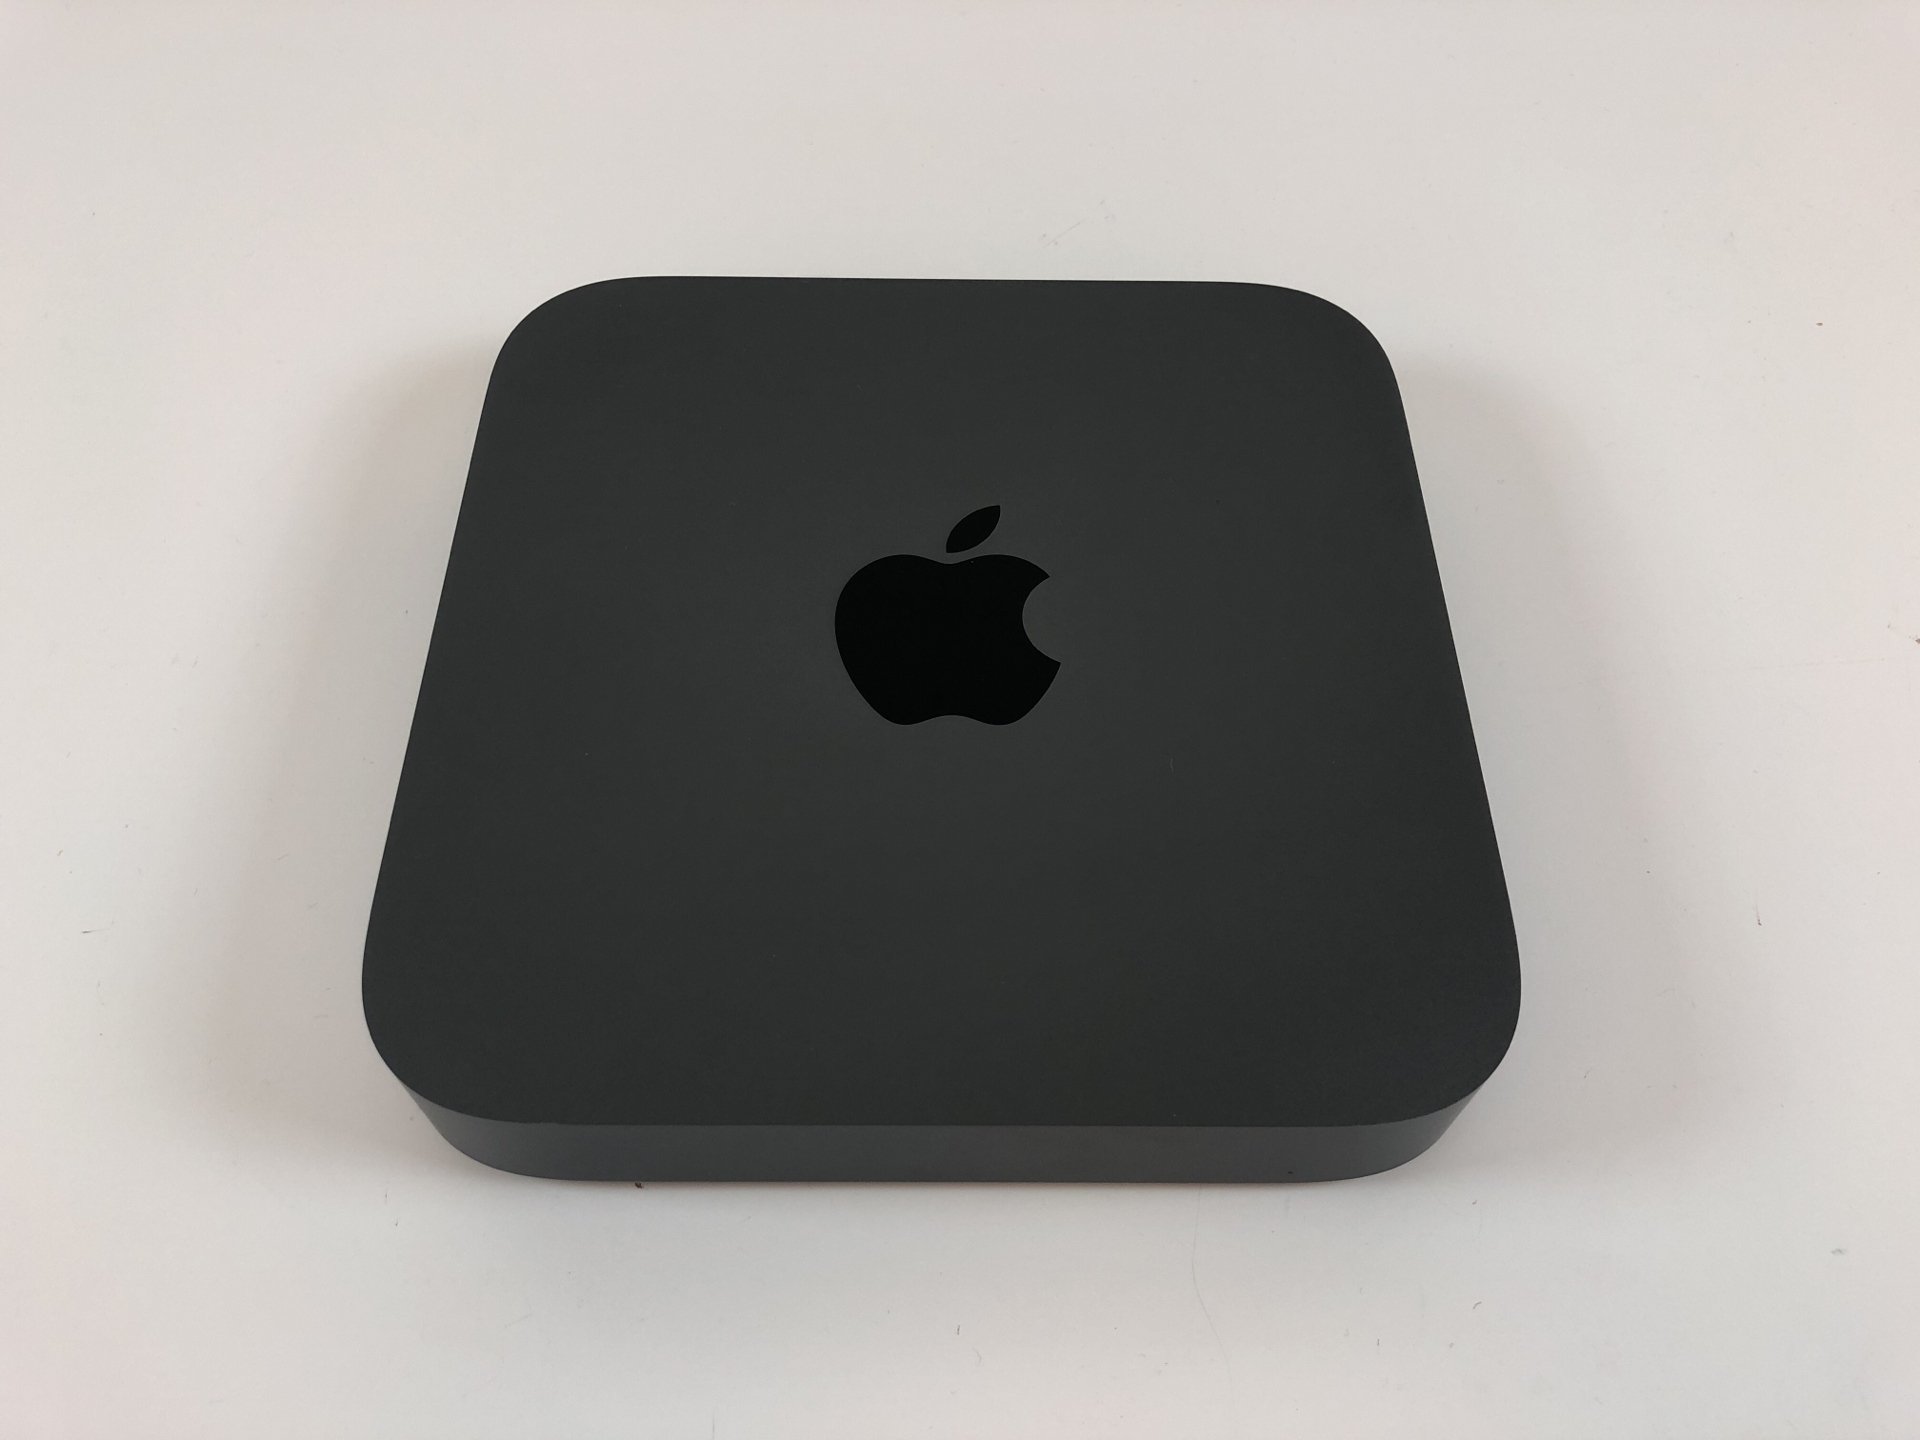 Mac Mini Late 2018 (Intel 6-Core i5 3.0 GHz 64 GB RAM 256 GB SSD), Intel 6-Core i5 3.0 GHz, 64 GB RAM, 256 GB SSD, Afbeelding 1